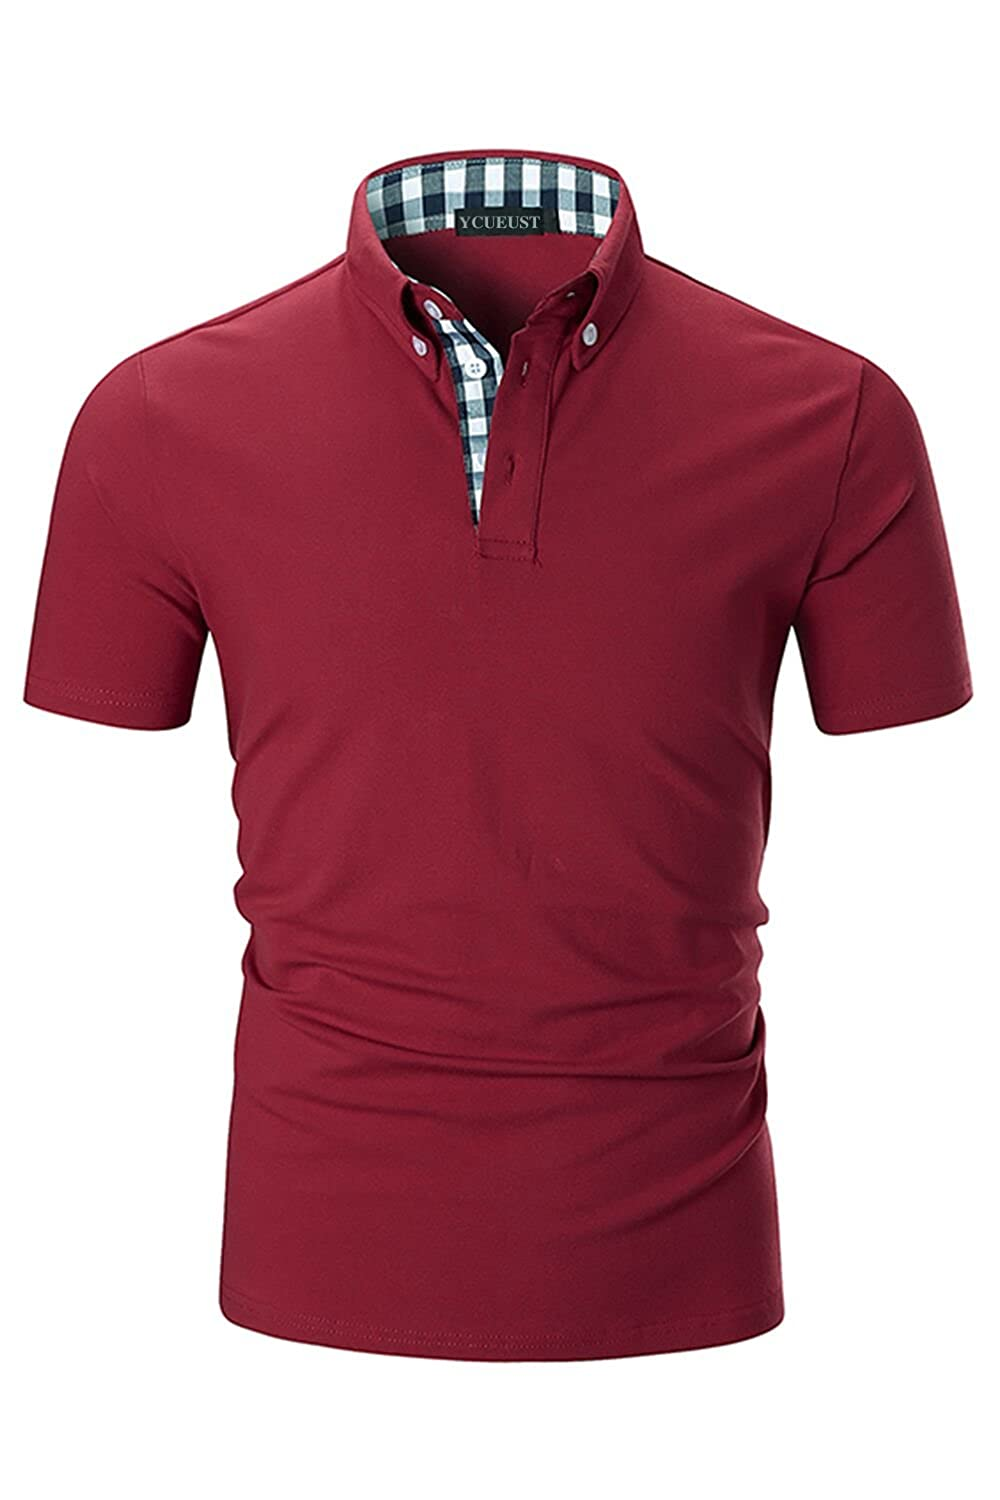 YCUEUST Mens Polo T-Shirts Casual Short Sleeve Plaid Collar Polos YCHENG07848YC